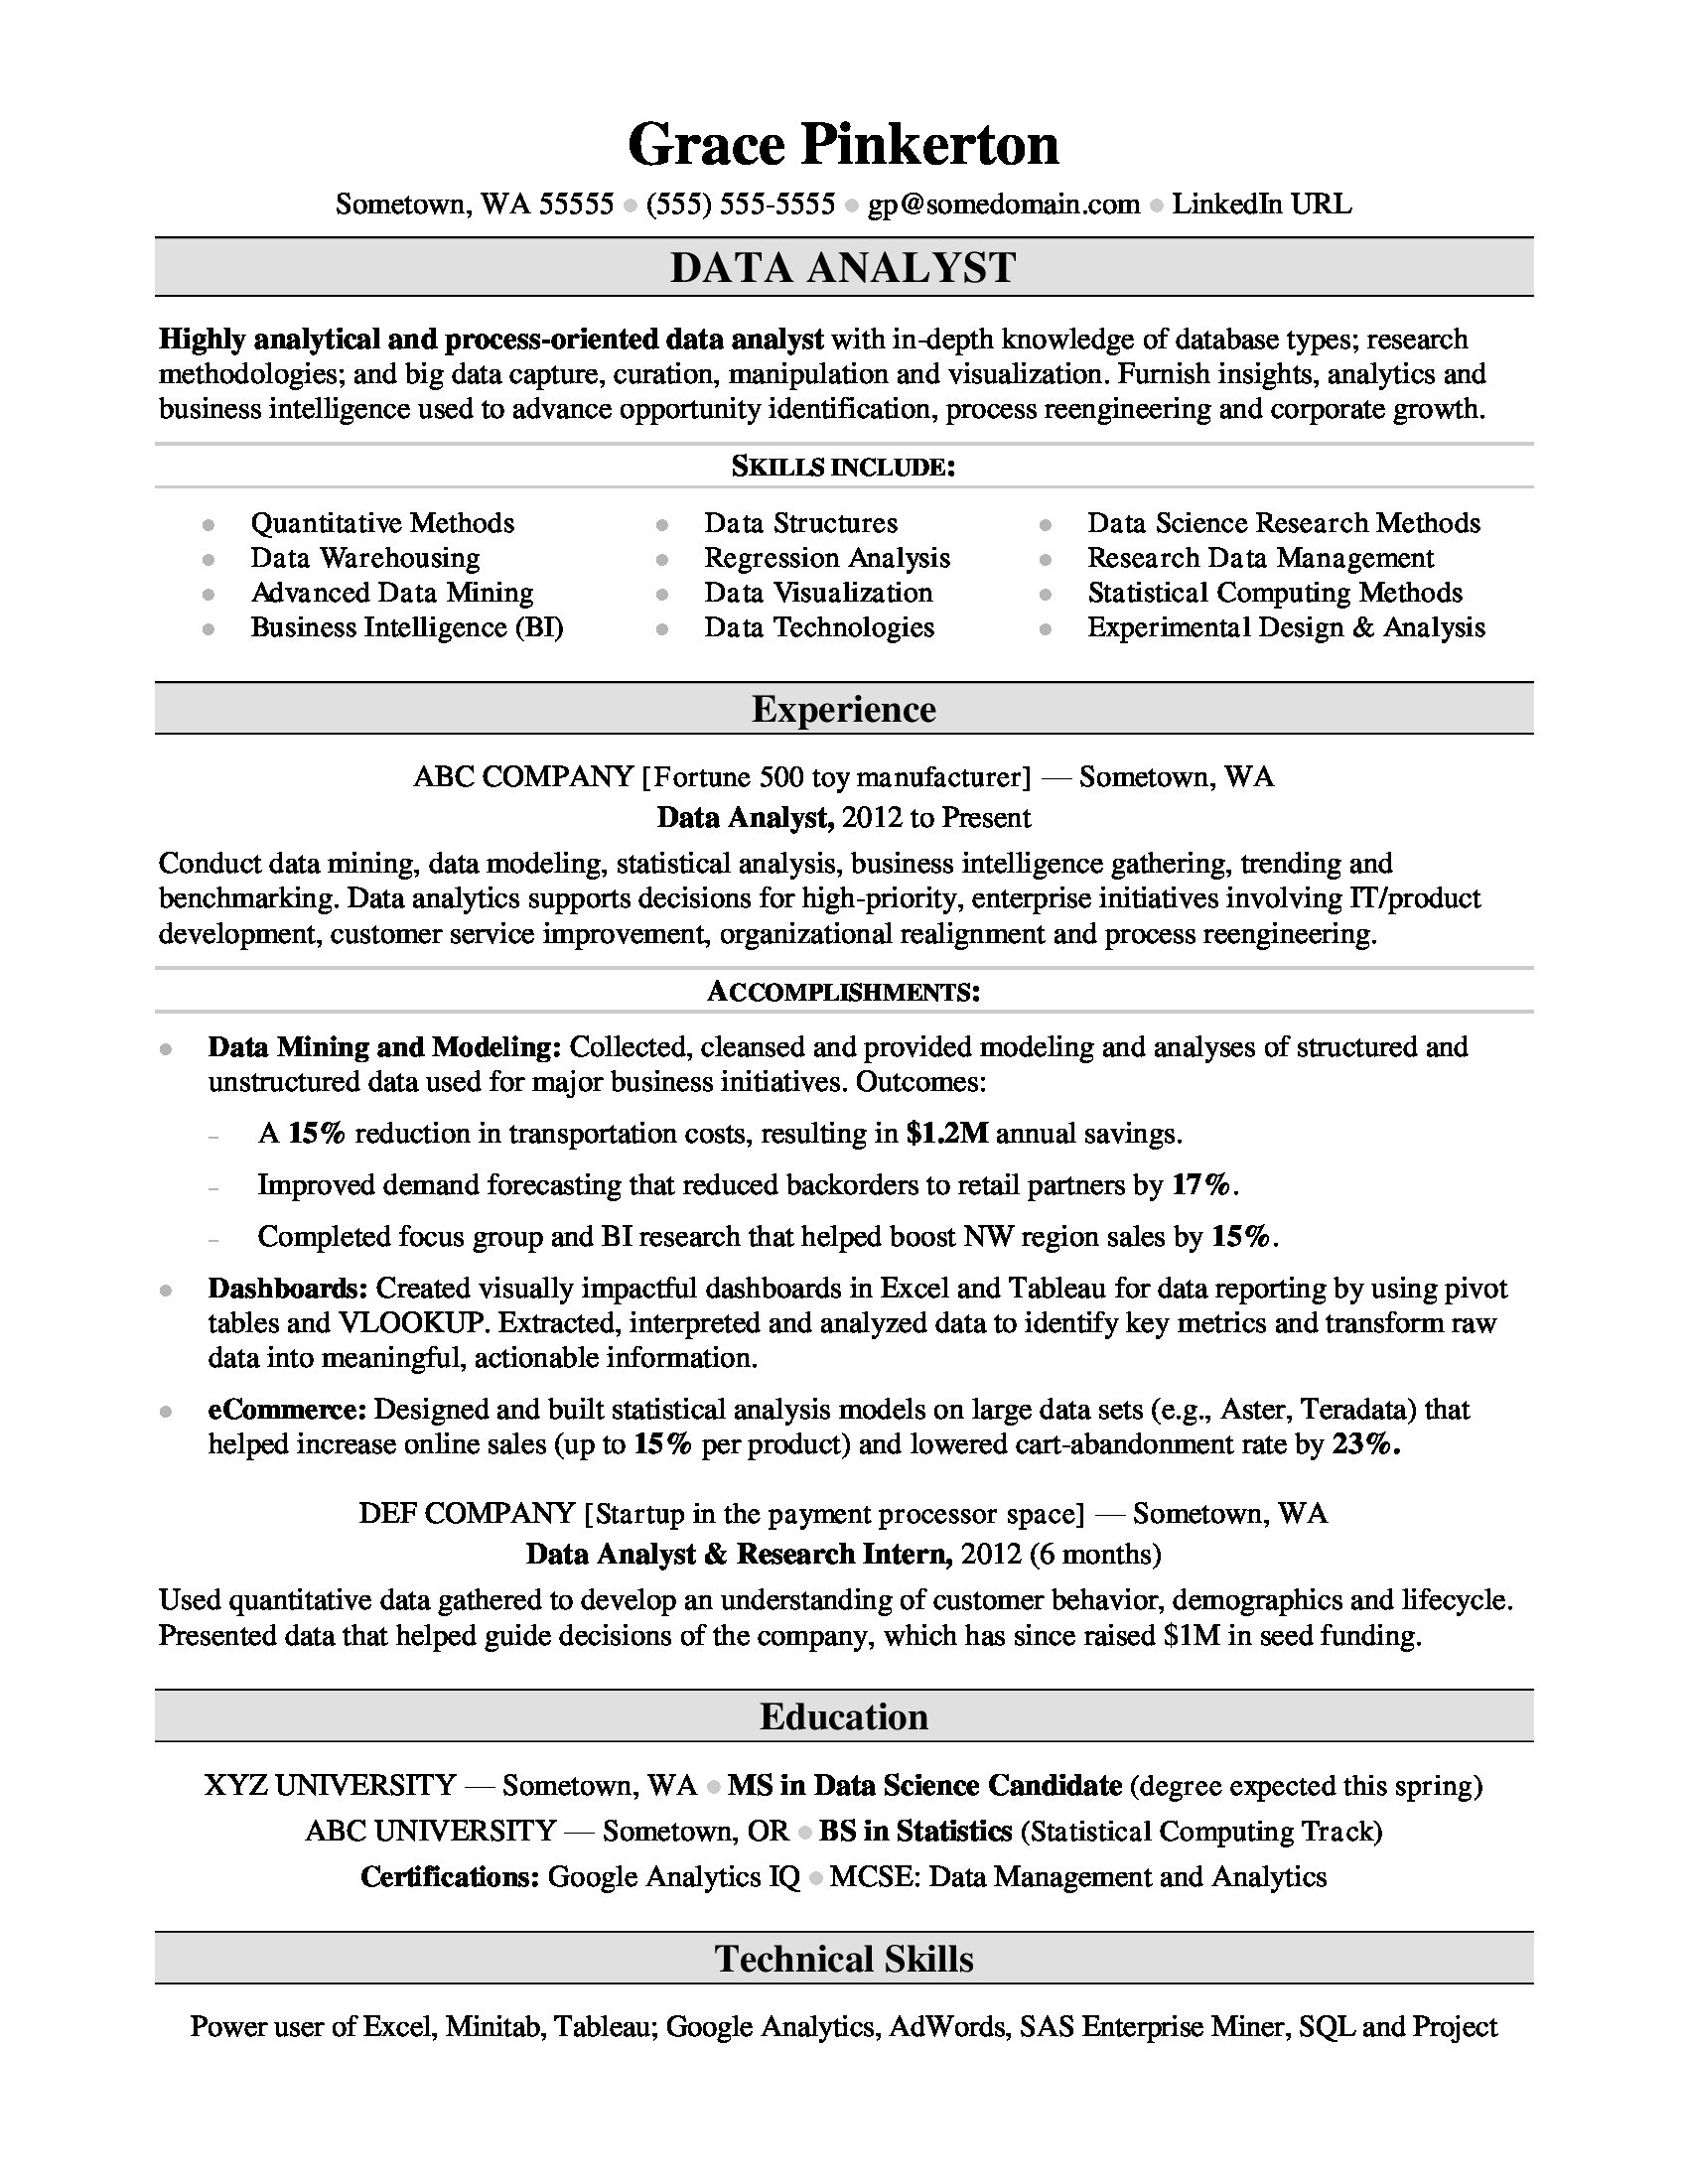 Data Analyst Resume Sample  Data Scientist Resume